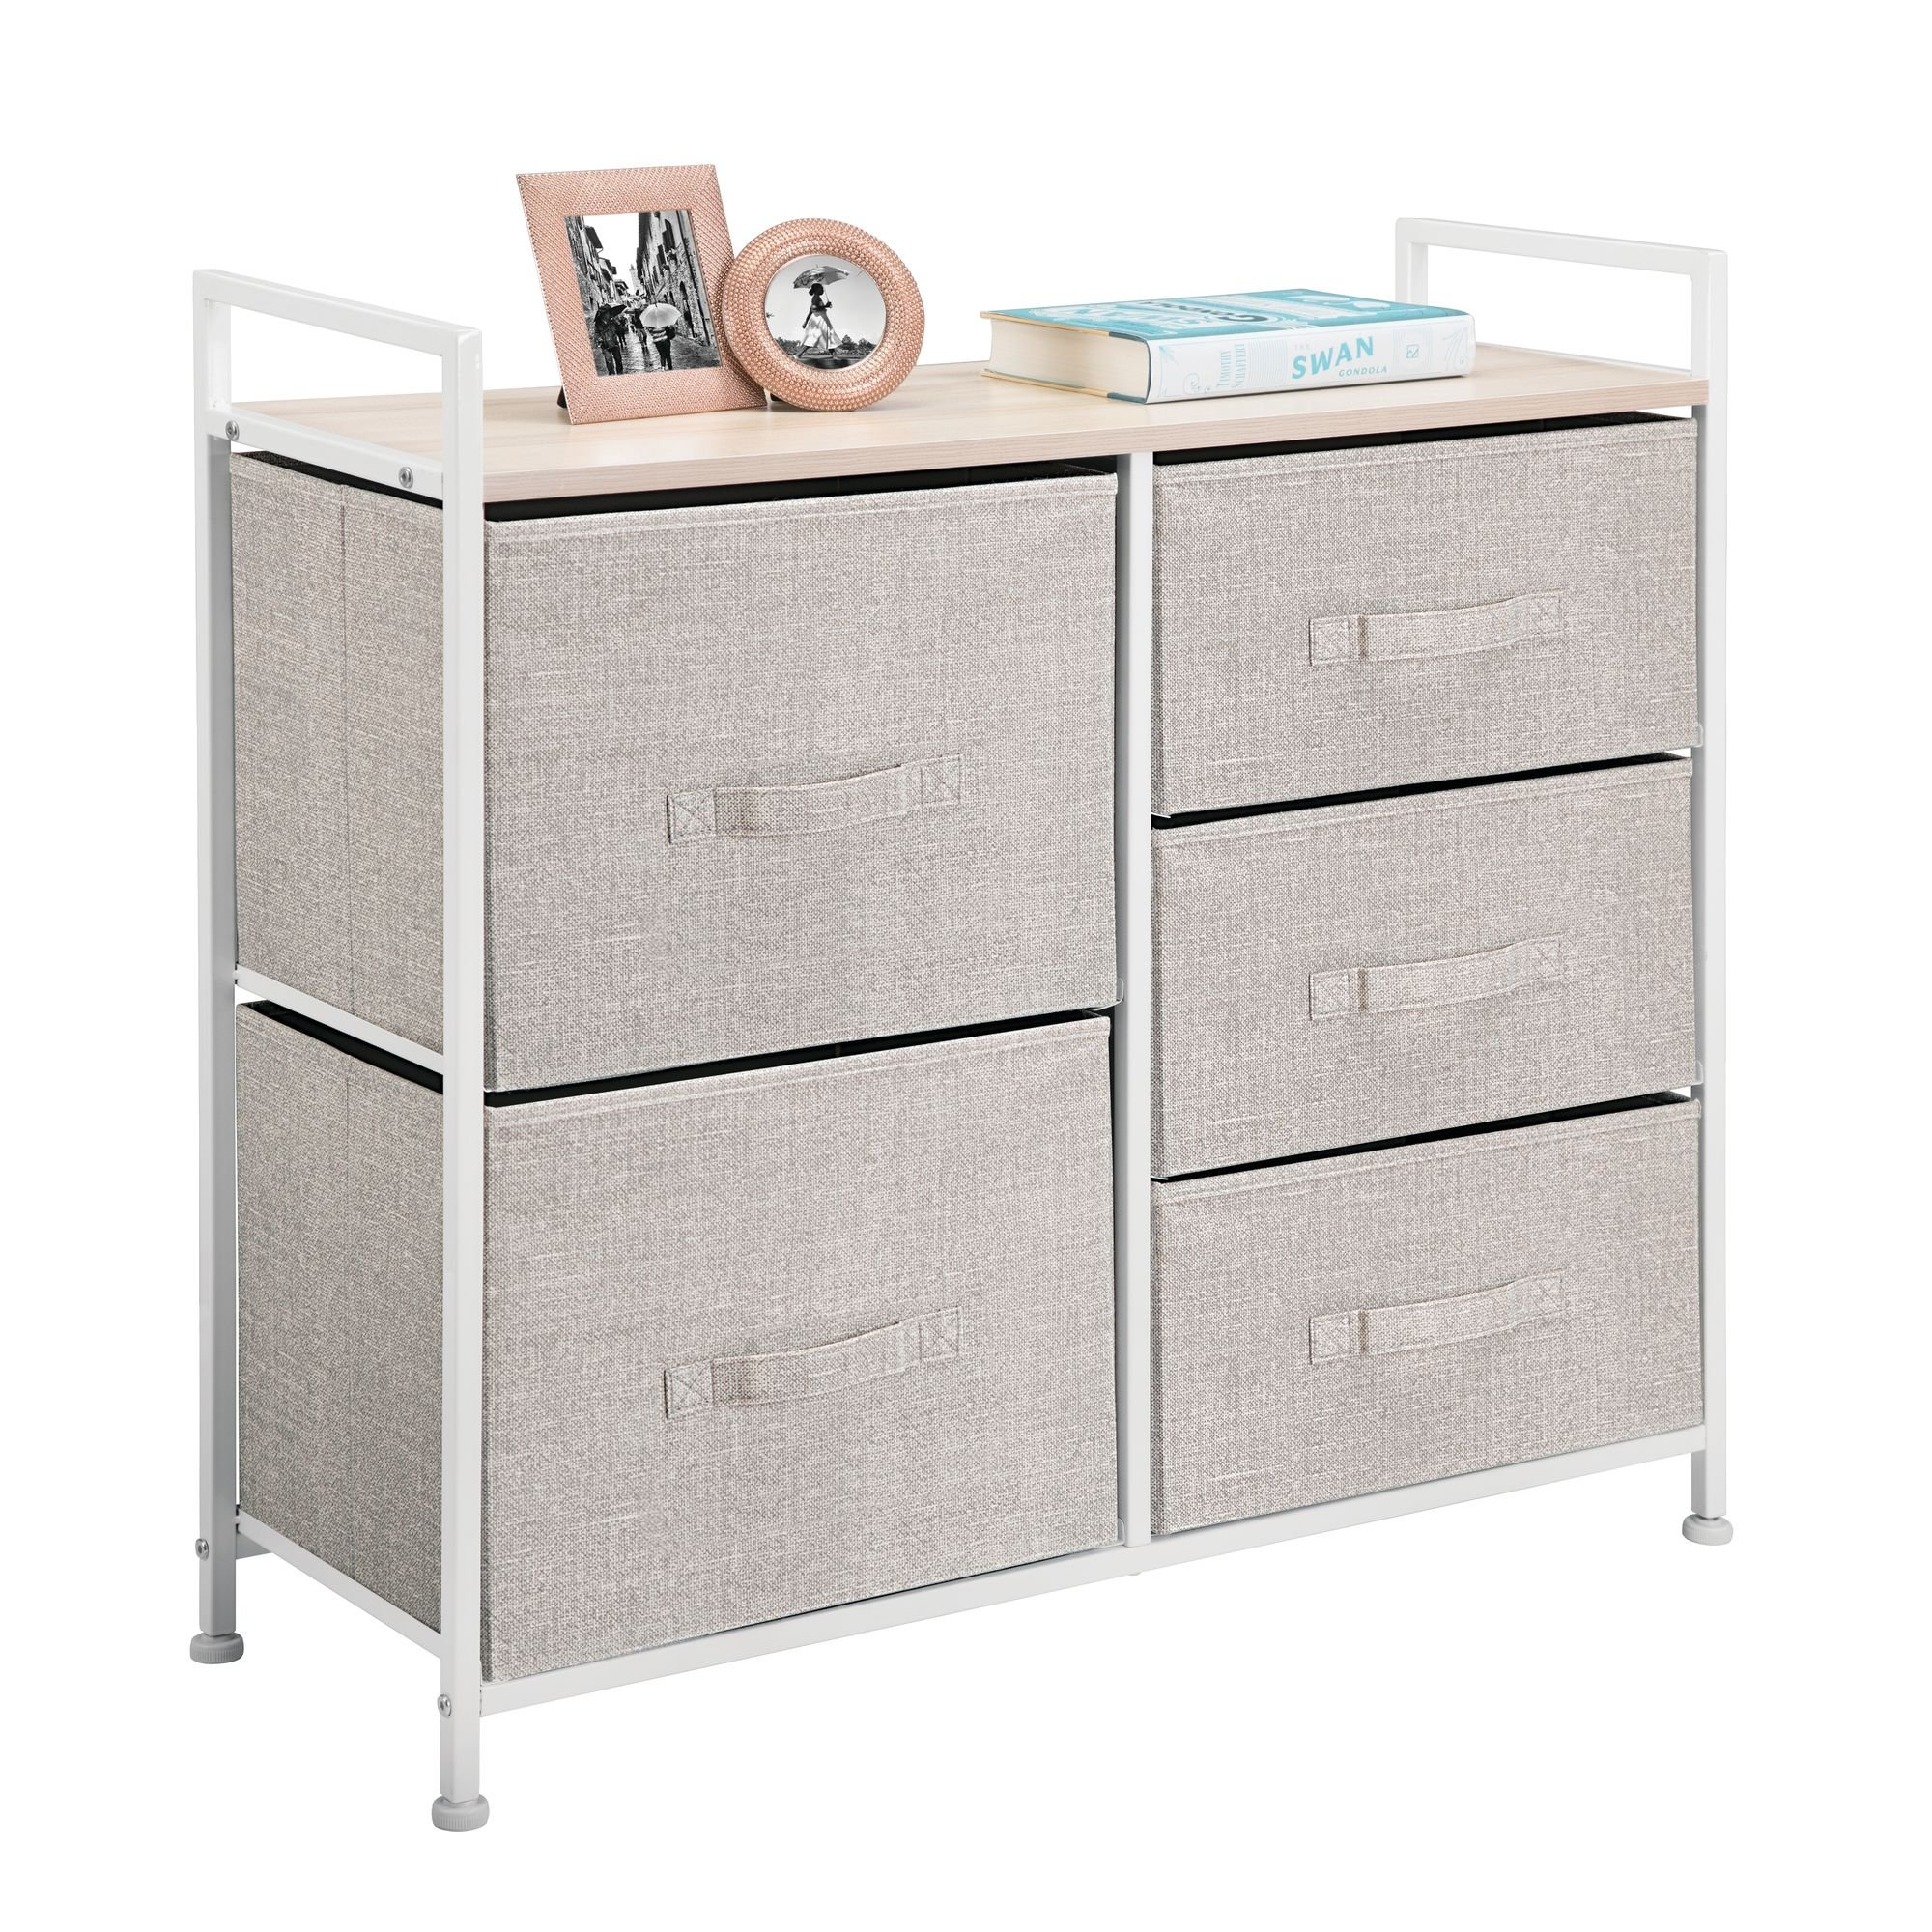 itm wood new chest storage drawer white bedroom soft dresser organizer finish furniture